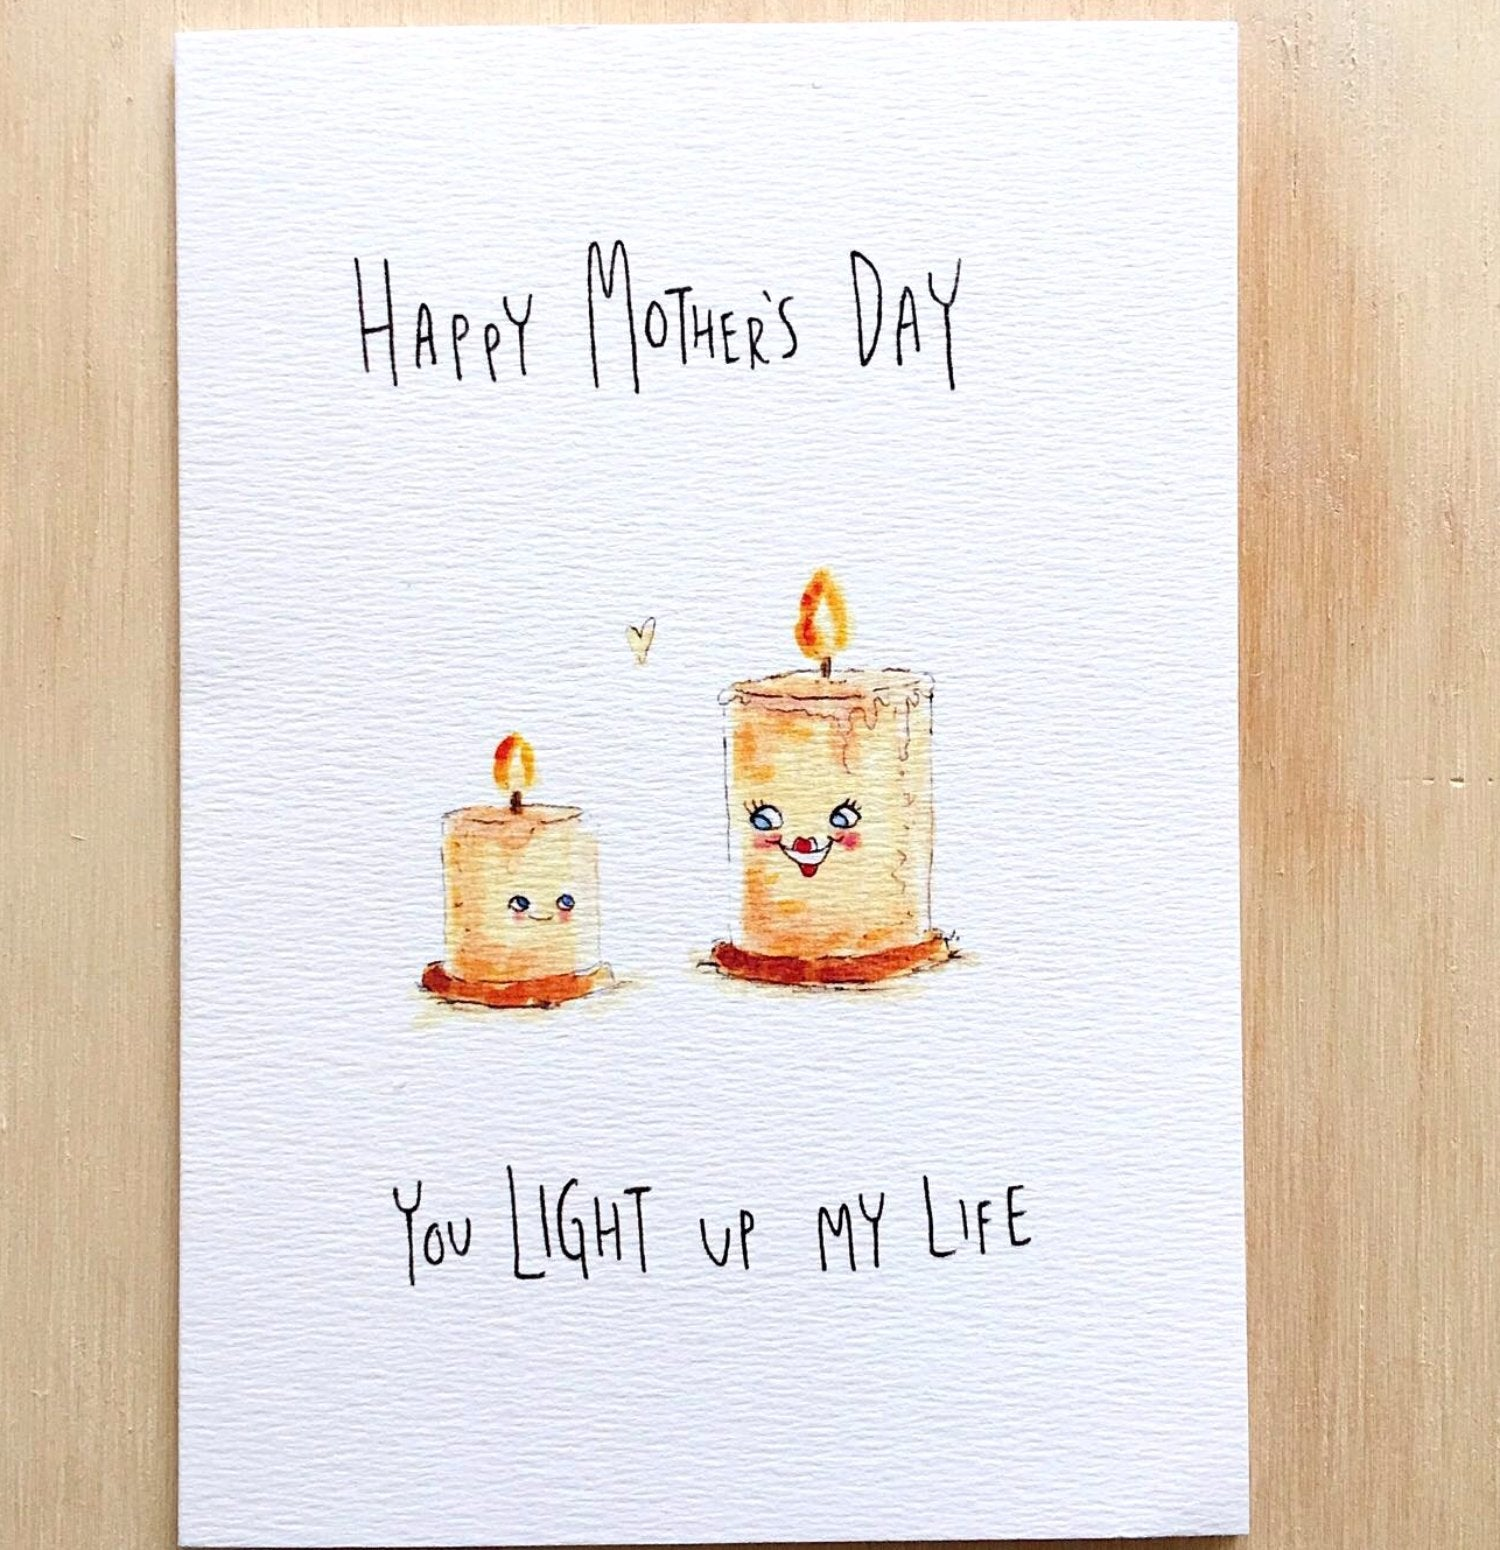 Happy Mother's Day, You Light Up My Life - Well Drawn